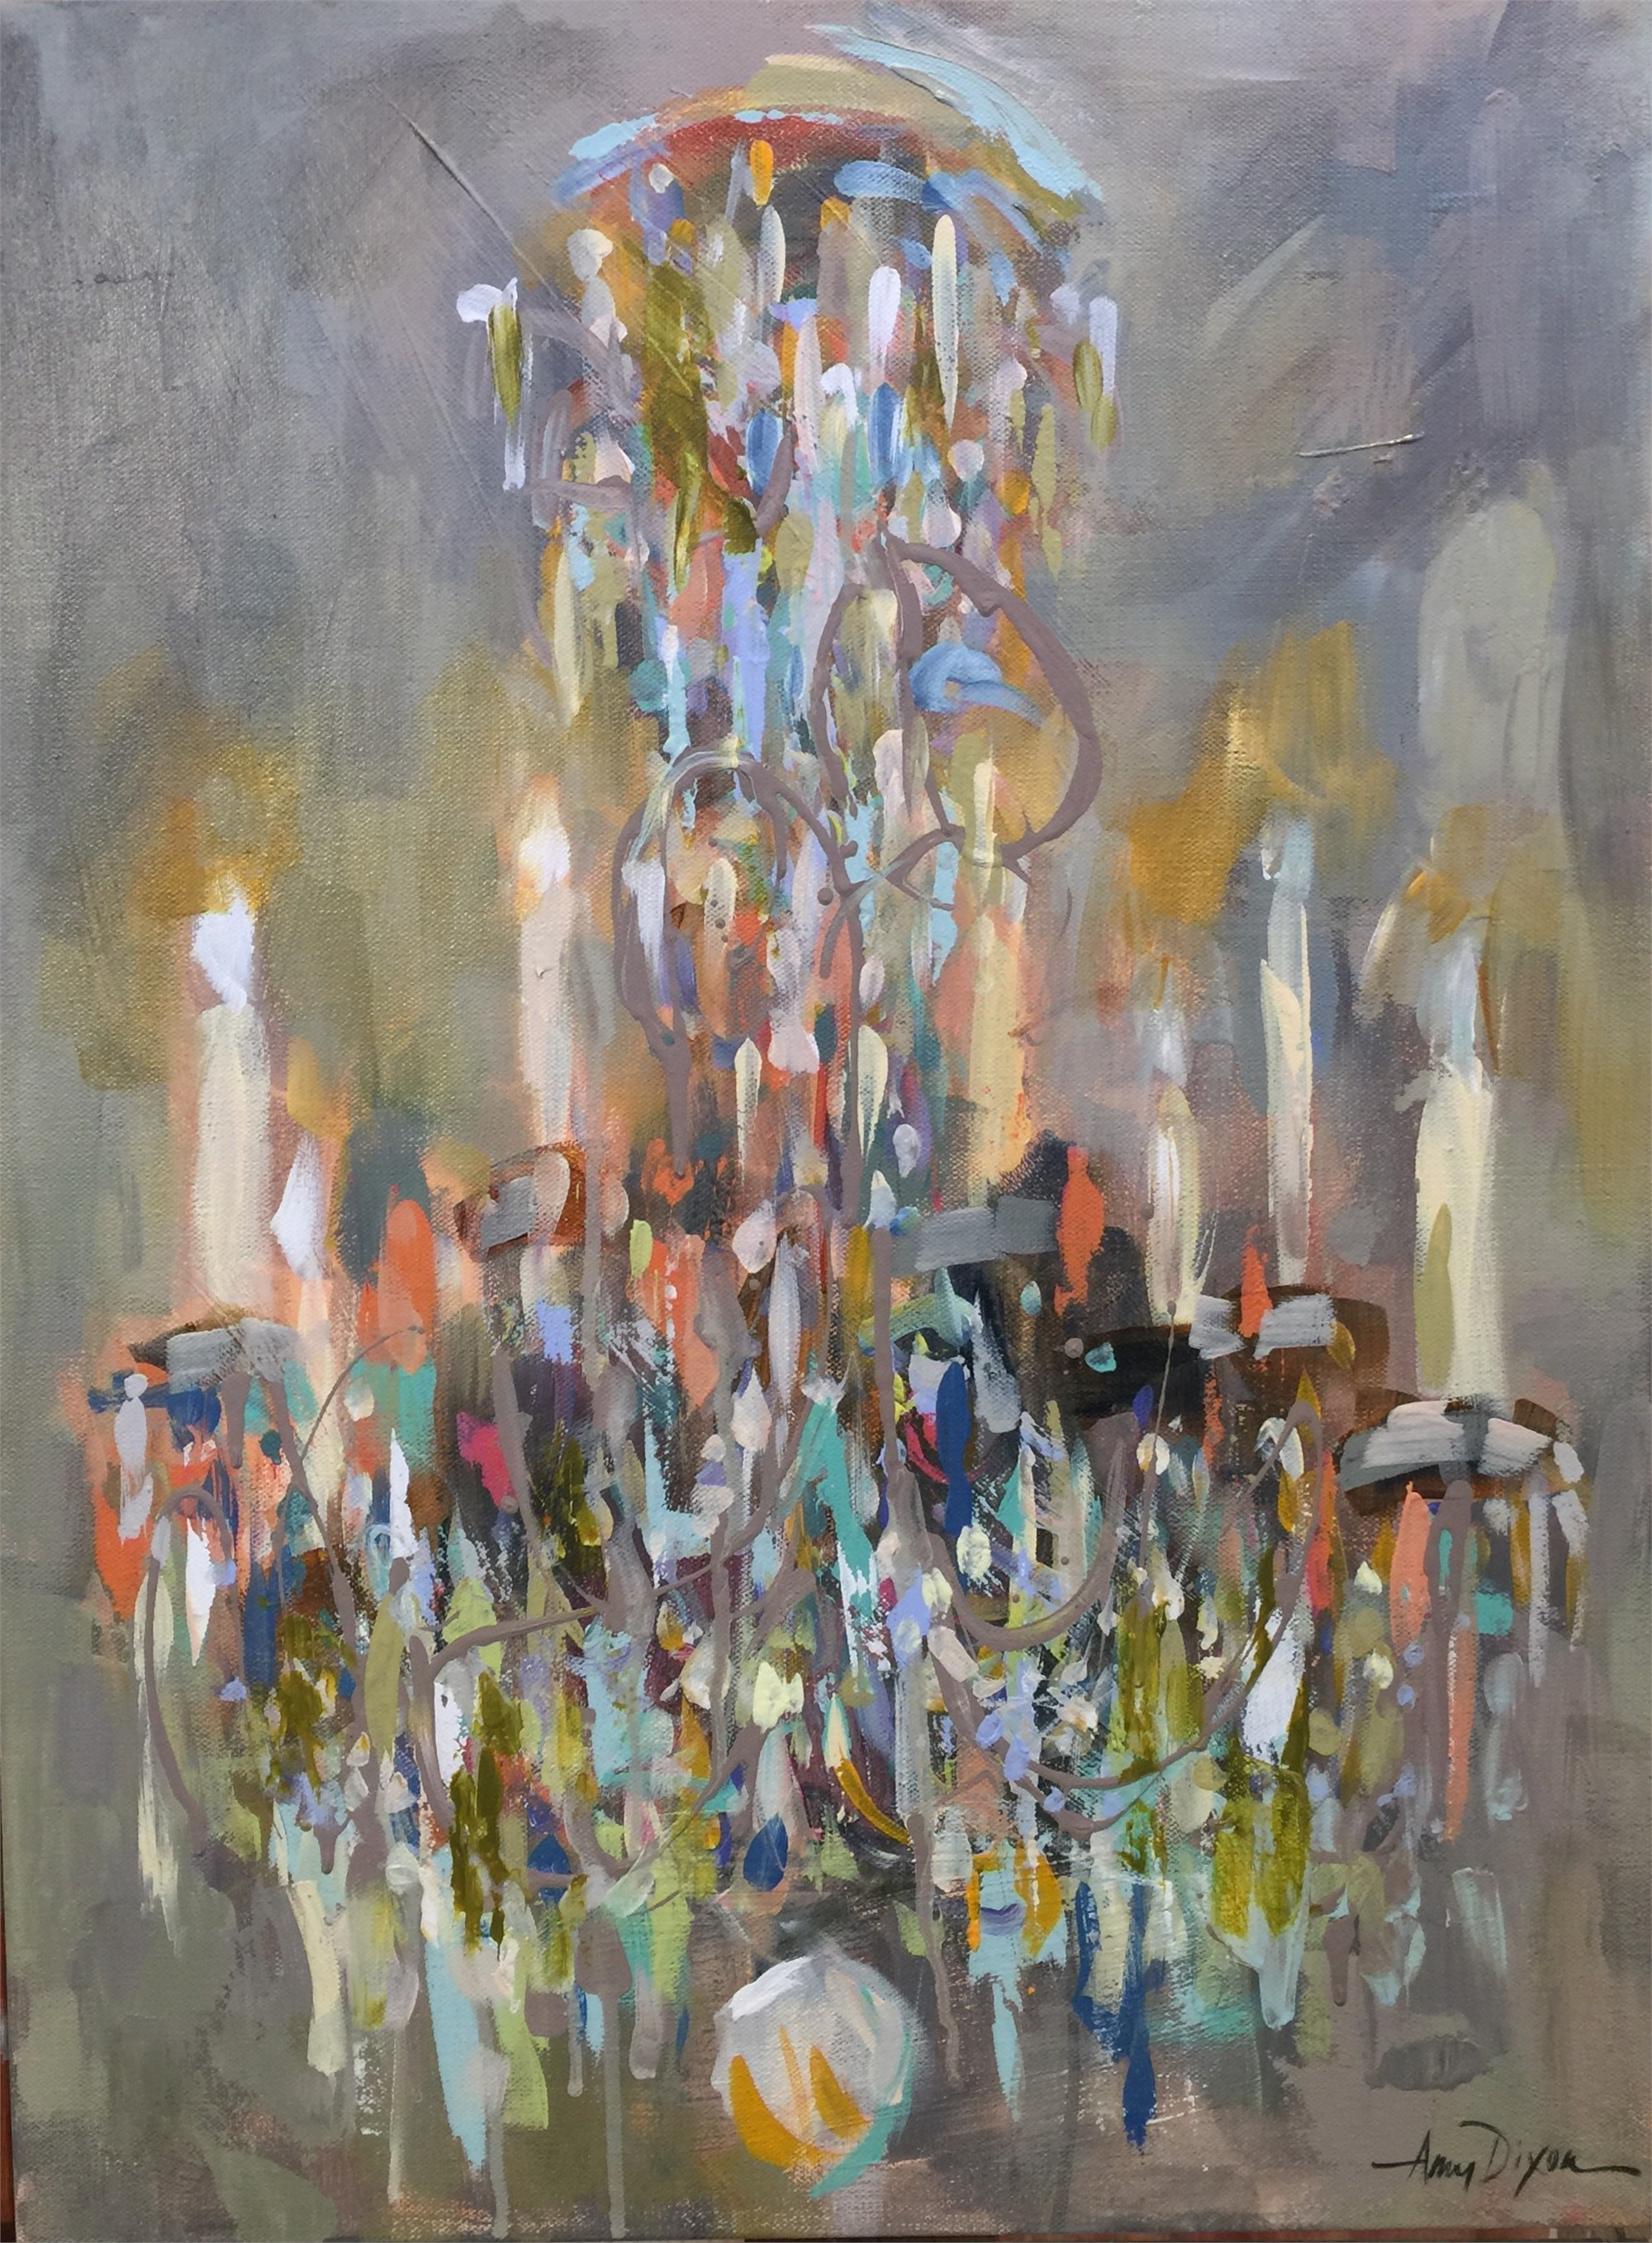 Swinging From the Chandelier by Amy Dixon